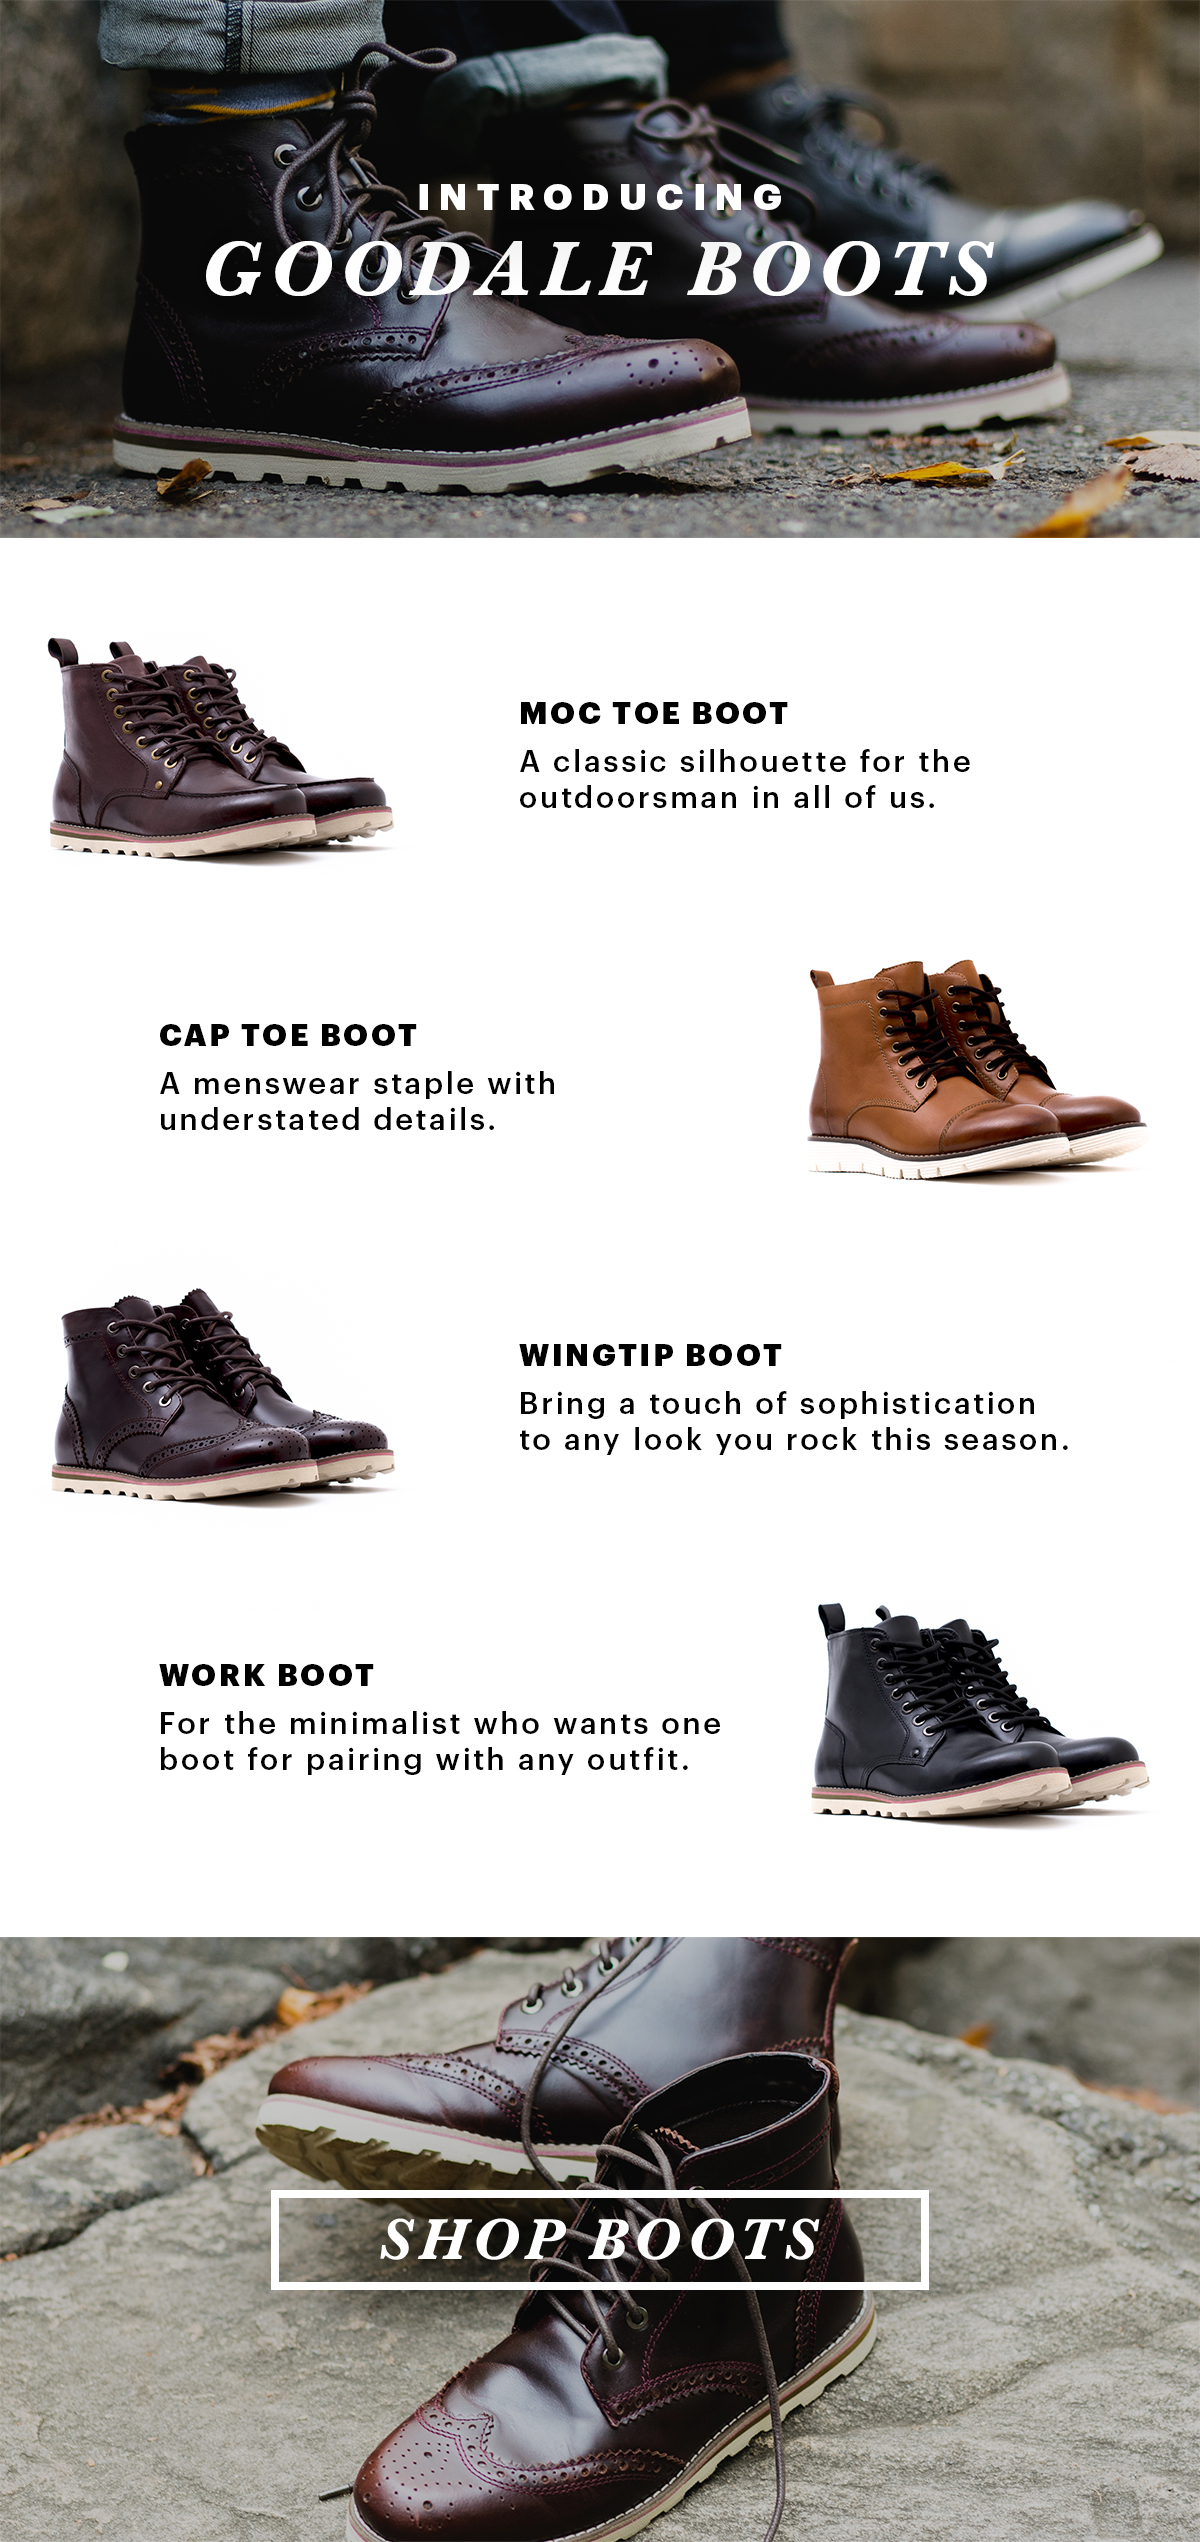 Boot Up! Introducing Goodale Boots